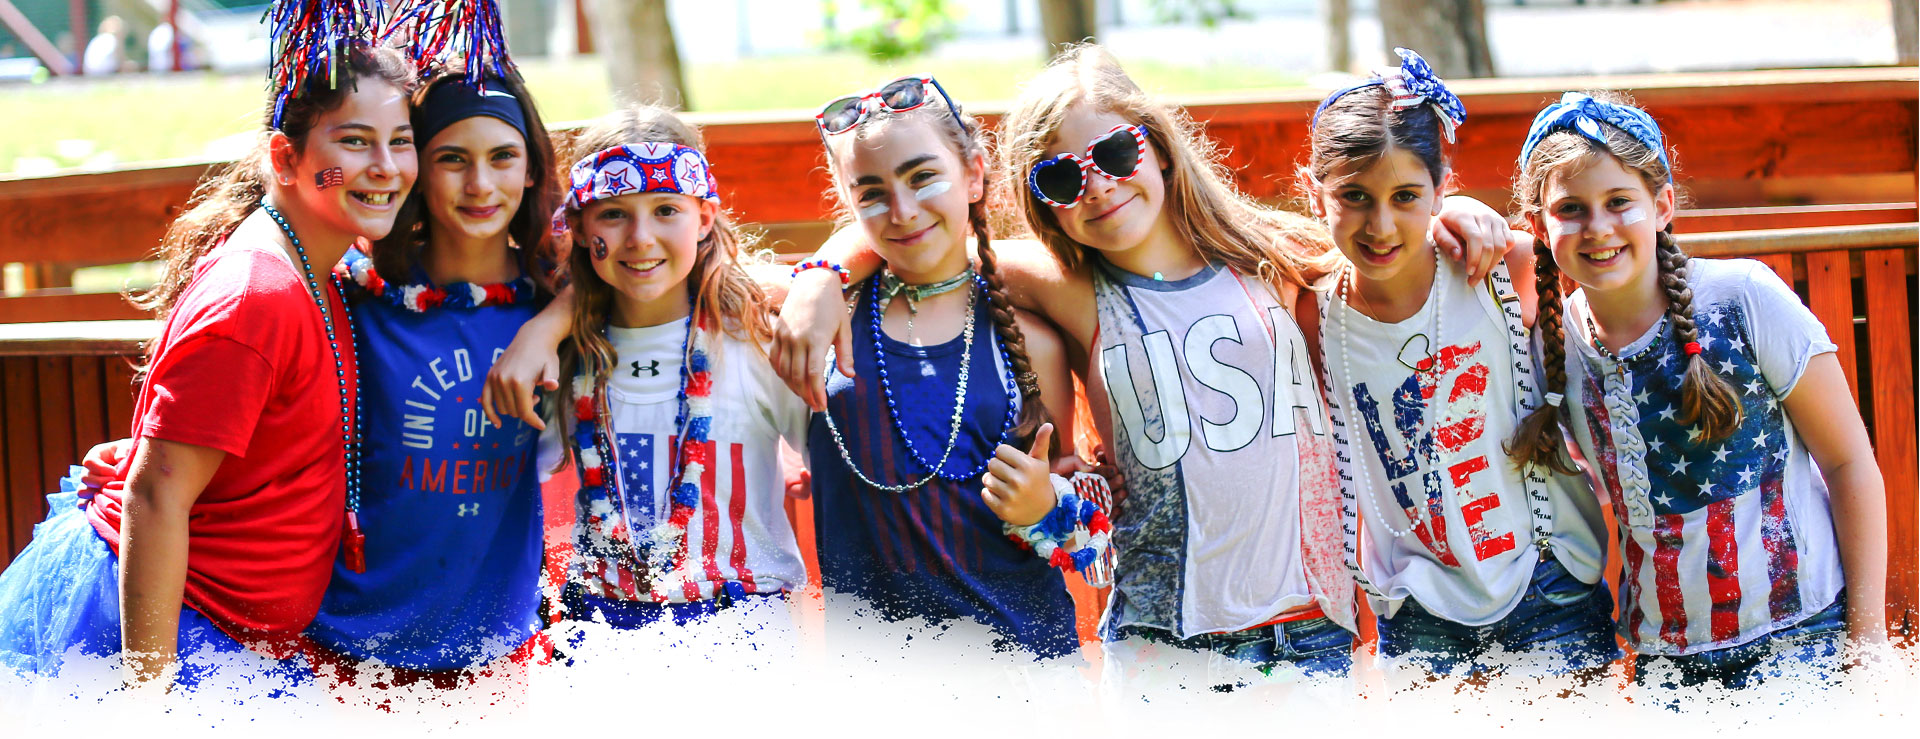 Enroll for summer camp at Camp Laurel in Maine